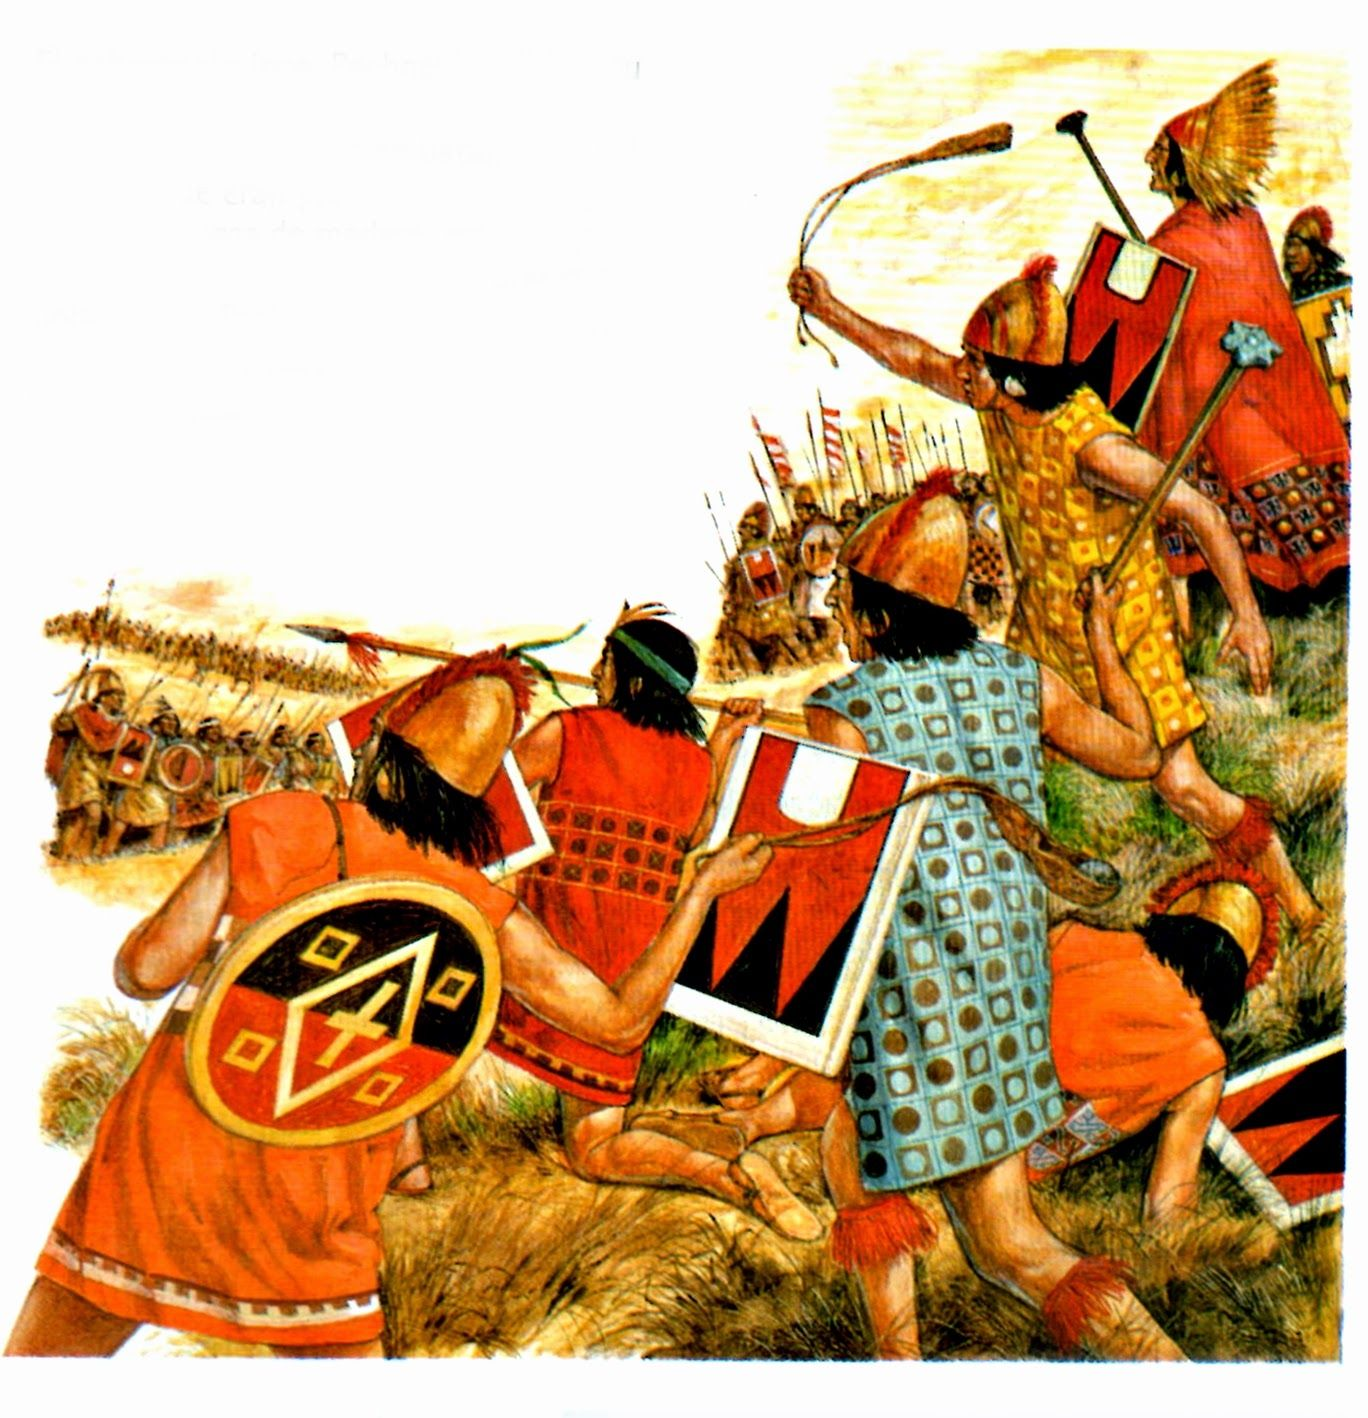 native americans and spanish early history Early american history began in the collision of european, west african, and native american peoples in north america europeans discovered america by accident, then created empires out of the conquest of indigenous peoples and the enslavement of africans.